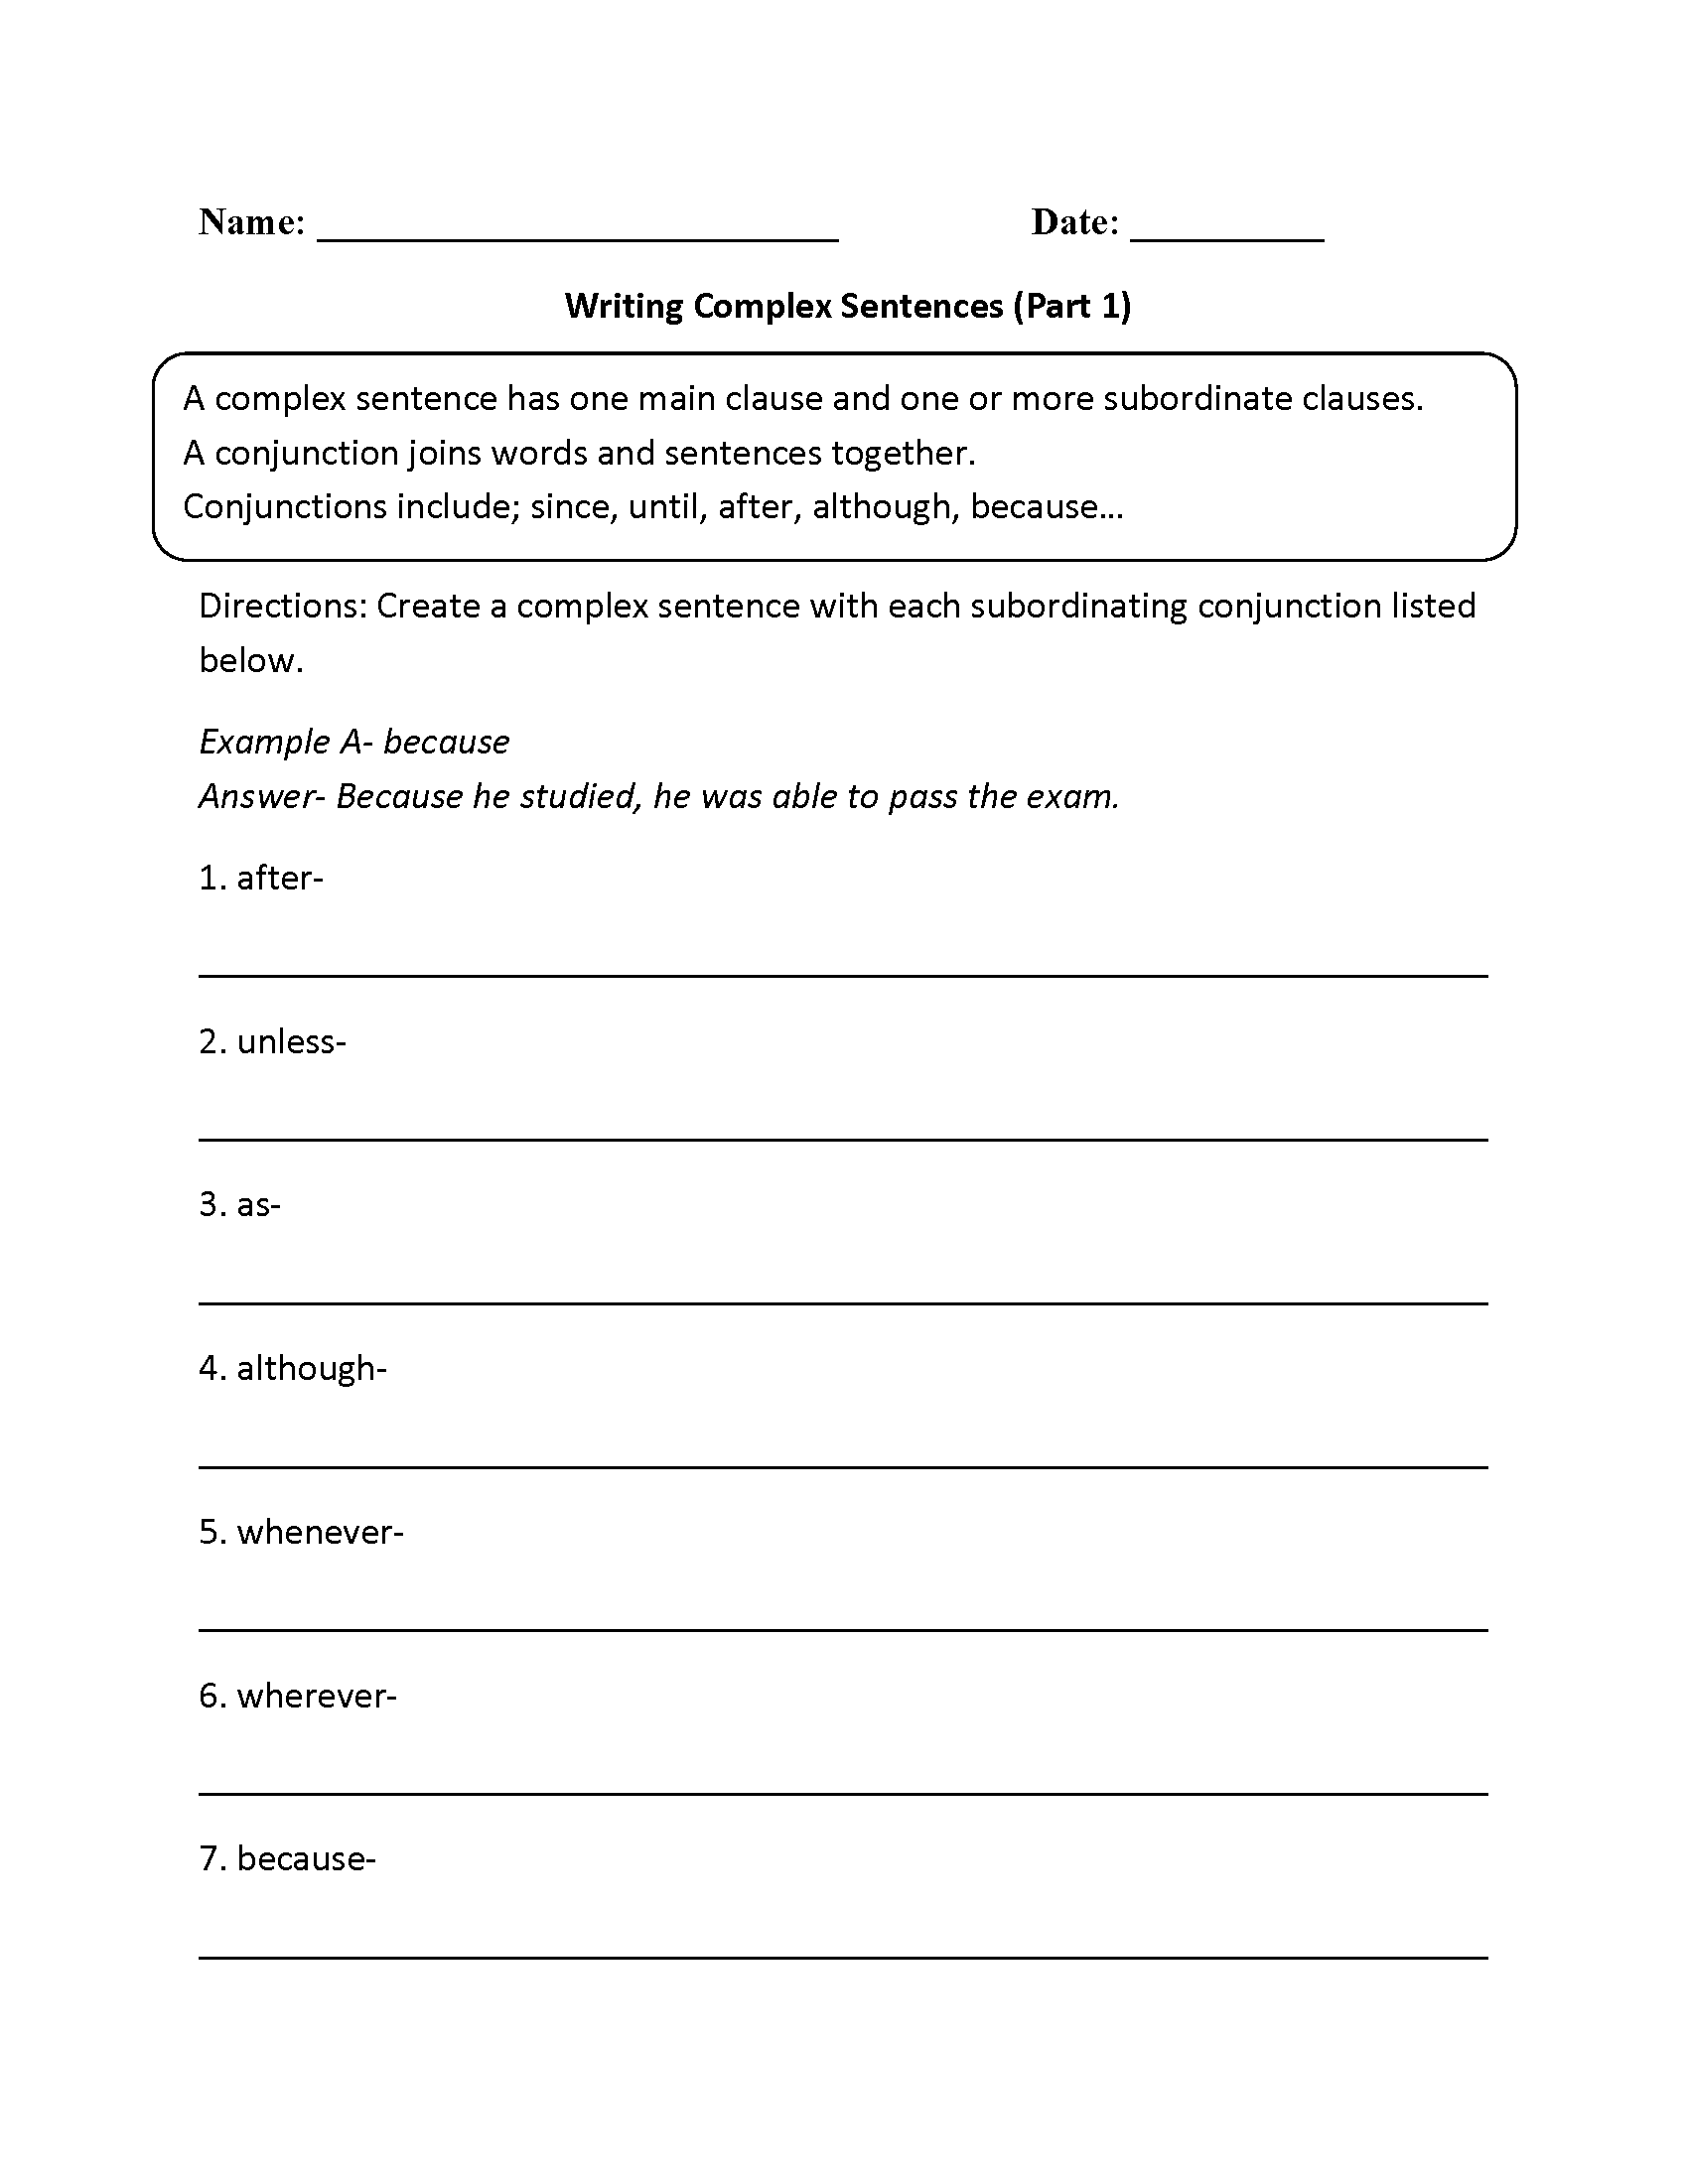 Writing Complex Sentences Worksheet Answers